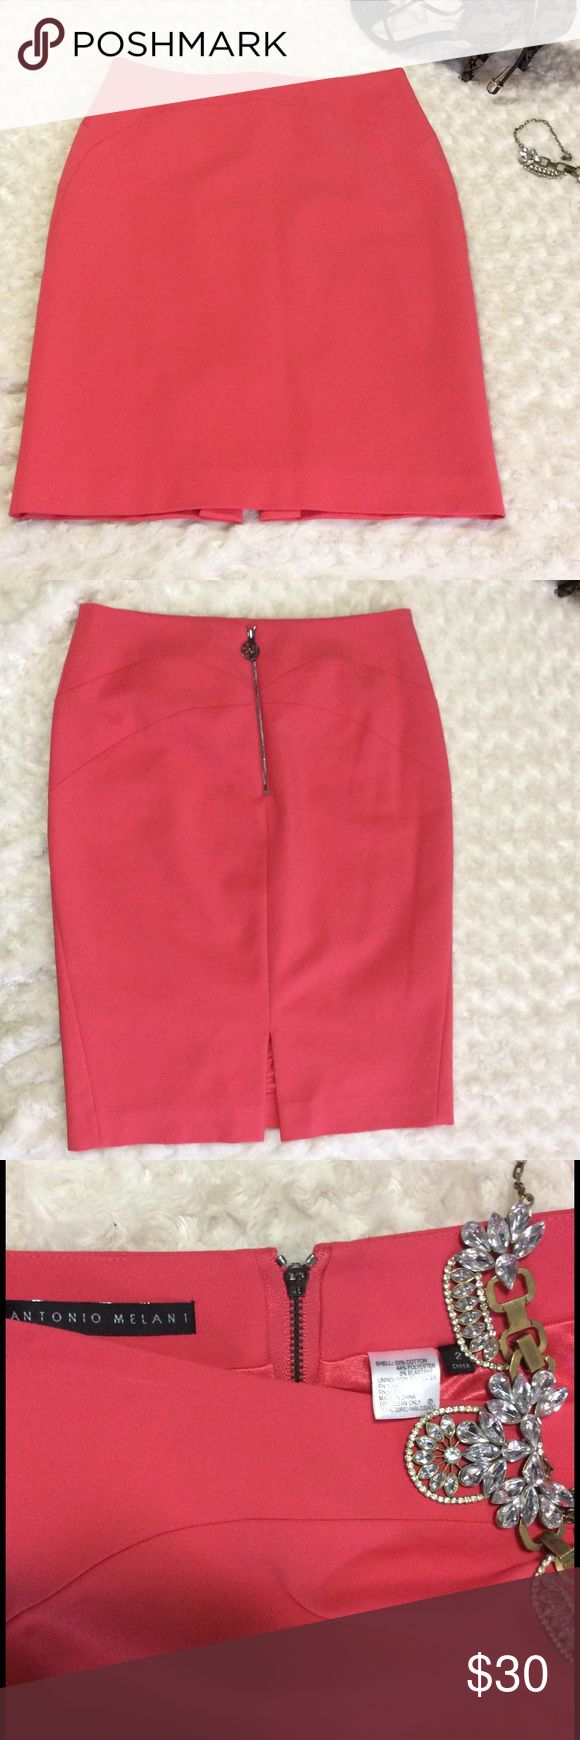 Antonio Melani Coral Pencil Skirt Sz 2 Antonio Melani Coral pencil skirt. Only wore 2x. Feels so soft on the inside (Like butter;) Has small creases from hanger but otherwise EUC. Hits right at top of knee. 22inches in length . ANTONIO MELANI Skirts Pencil